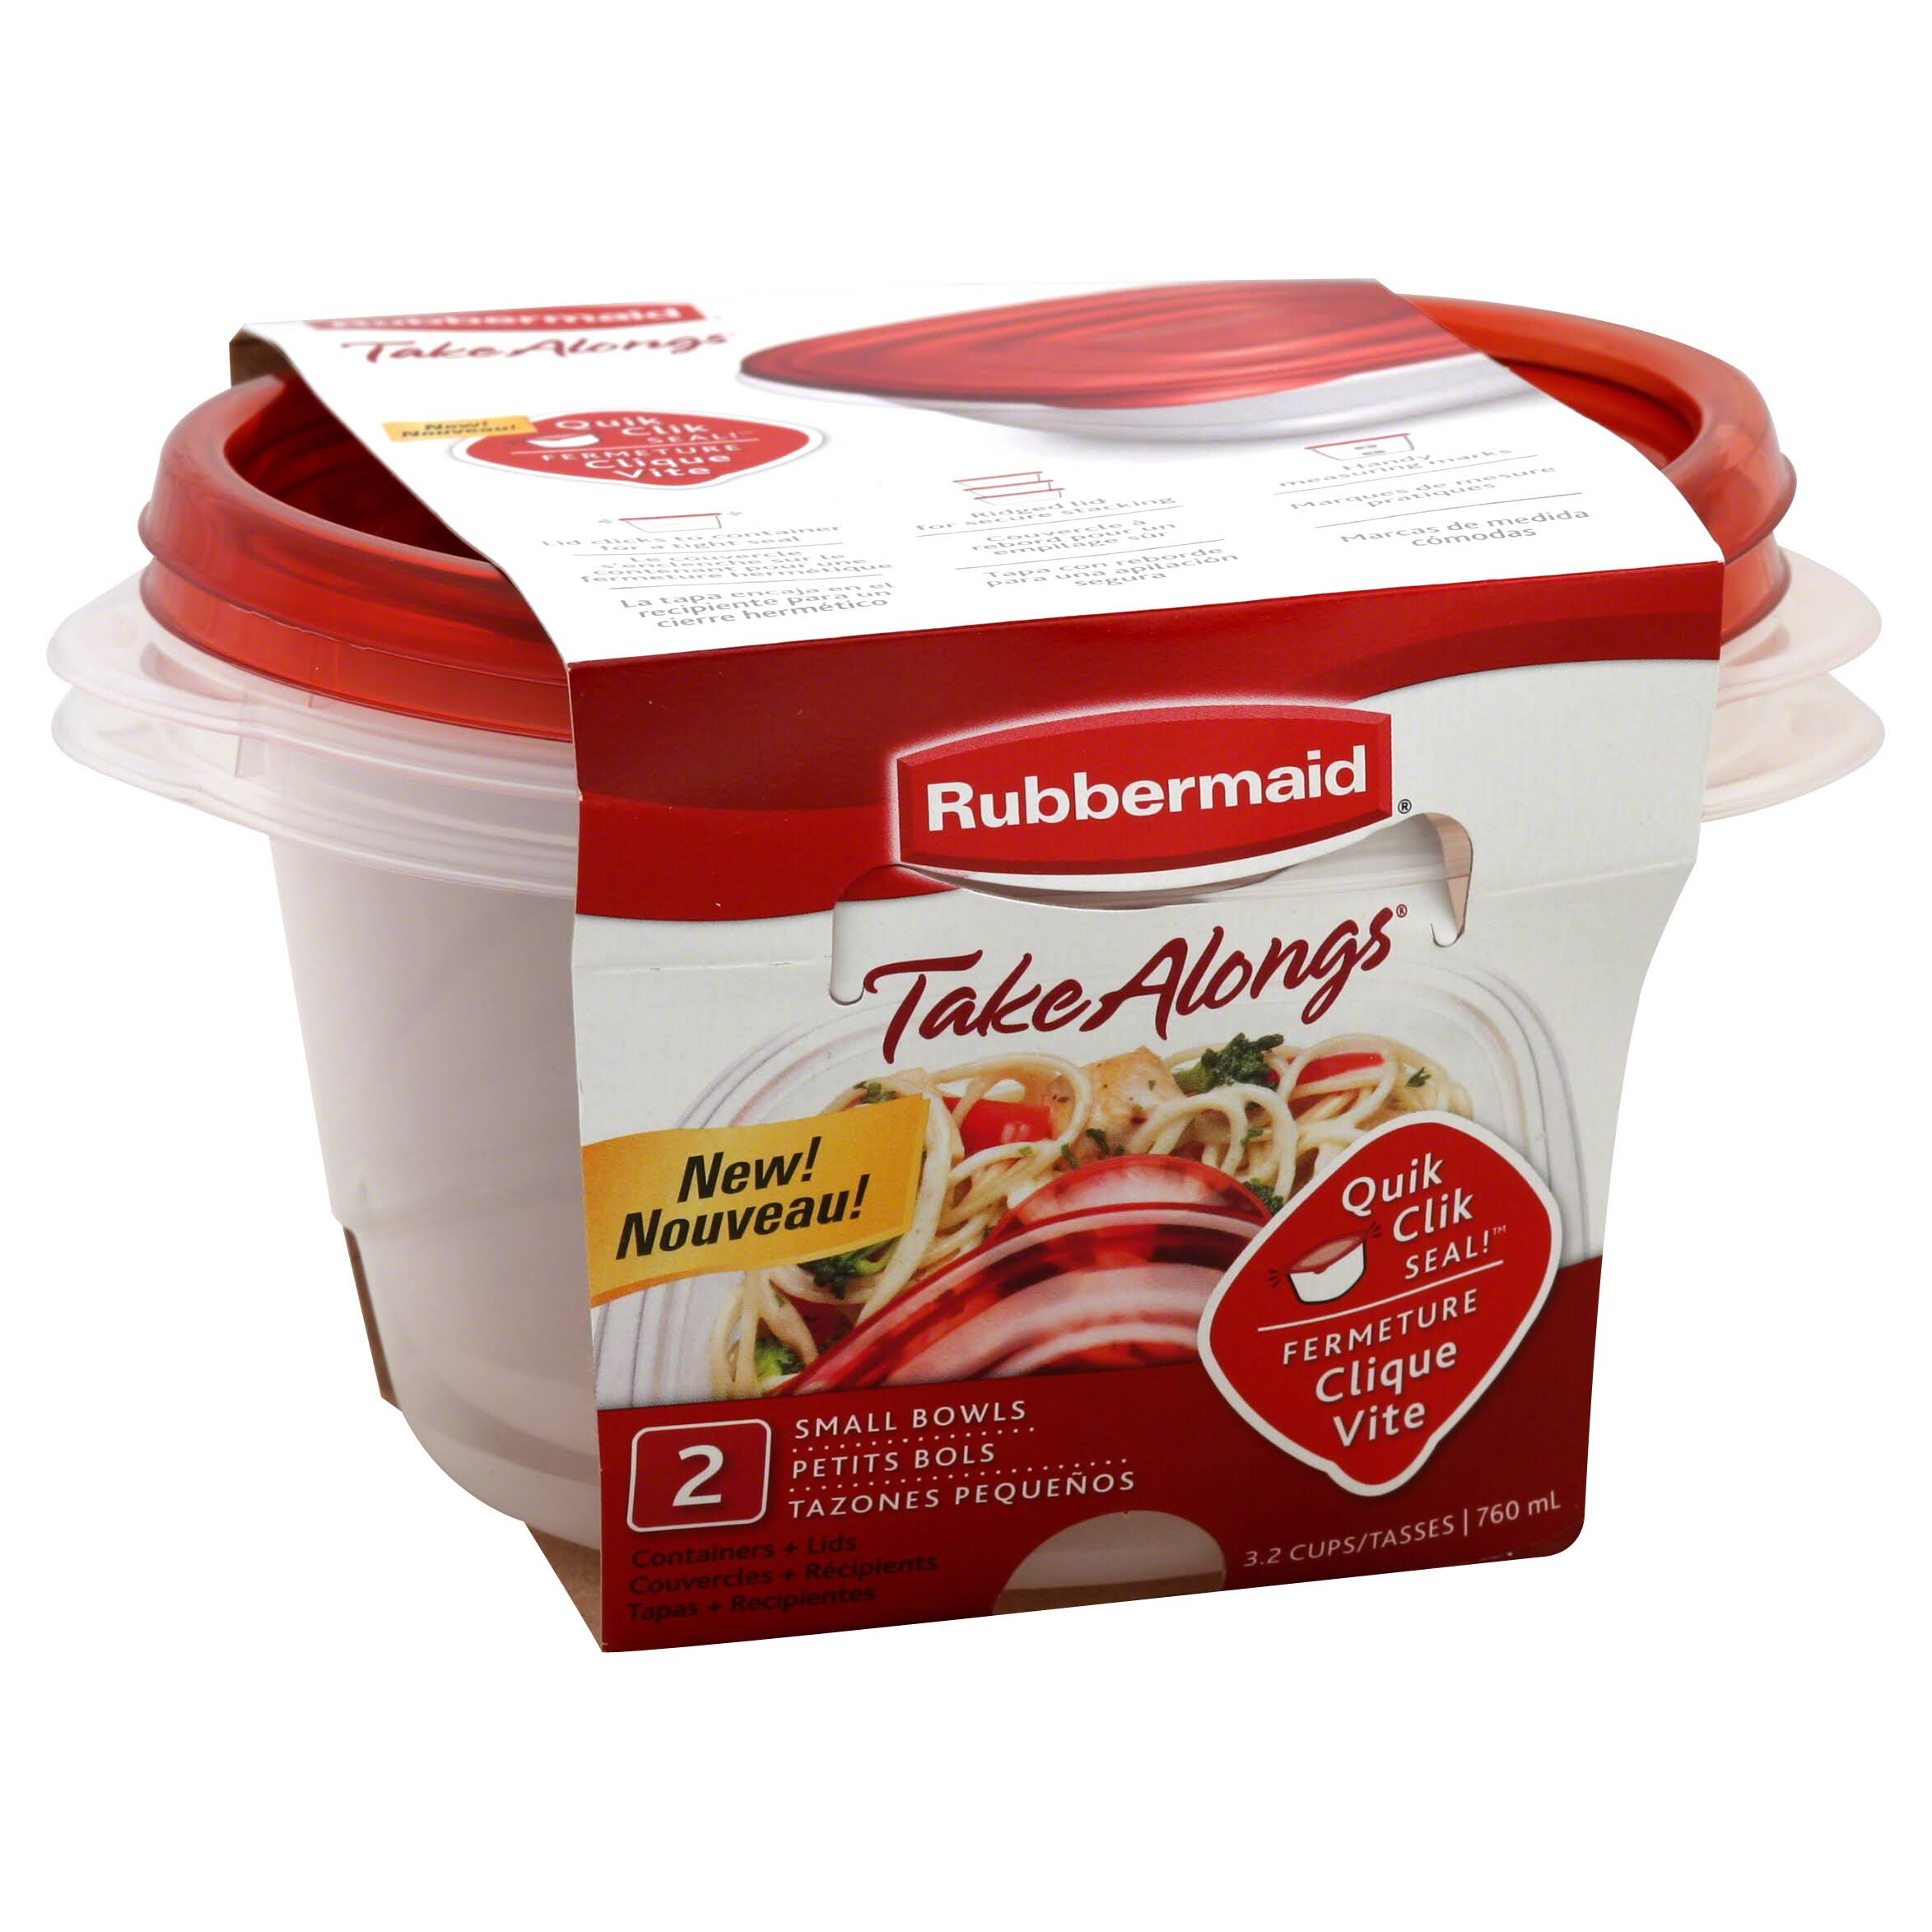 Rubbermaid Take Alongs Round Food Container - 2ct, Pack of 3